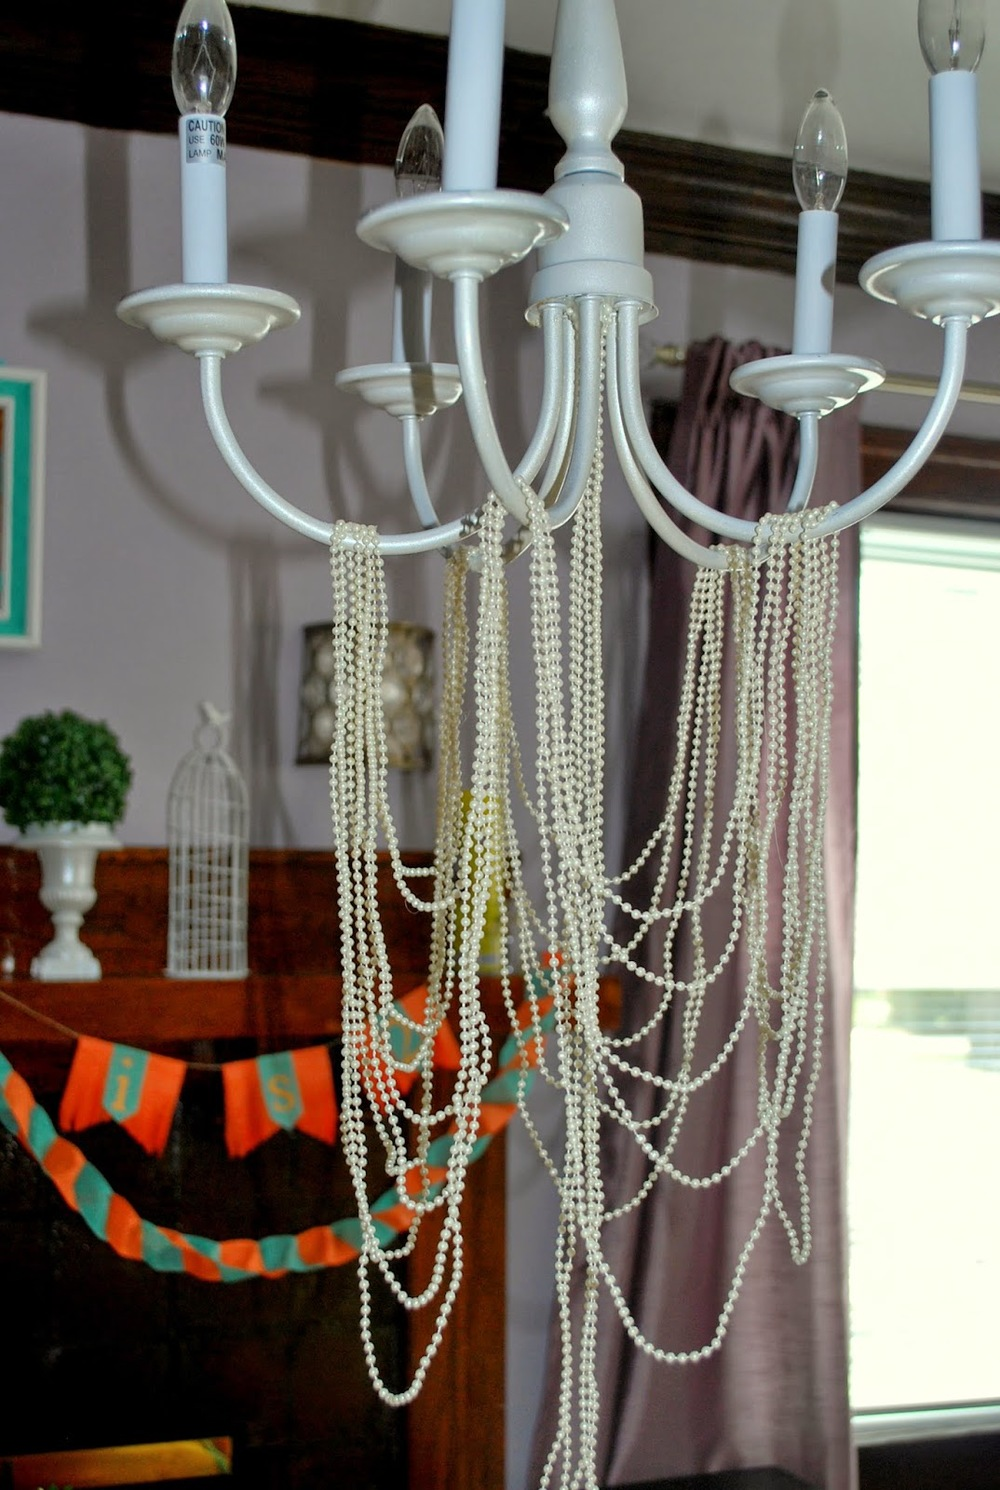 Natasha was searching for many weeks for the perfect chandelier to use as an overhang for the children's table. She discovered the perfect one on Craigslist. She spray painted and decorated it with pearl strands. Super chic!